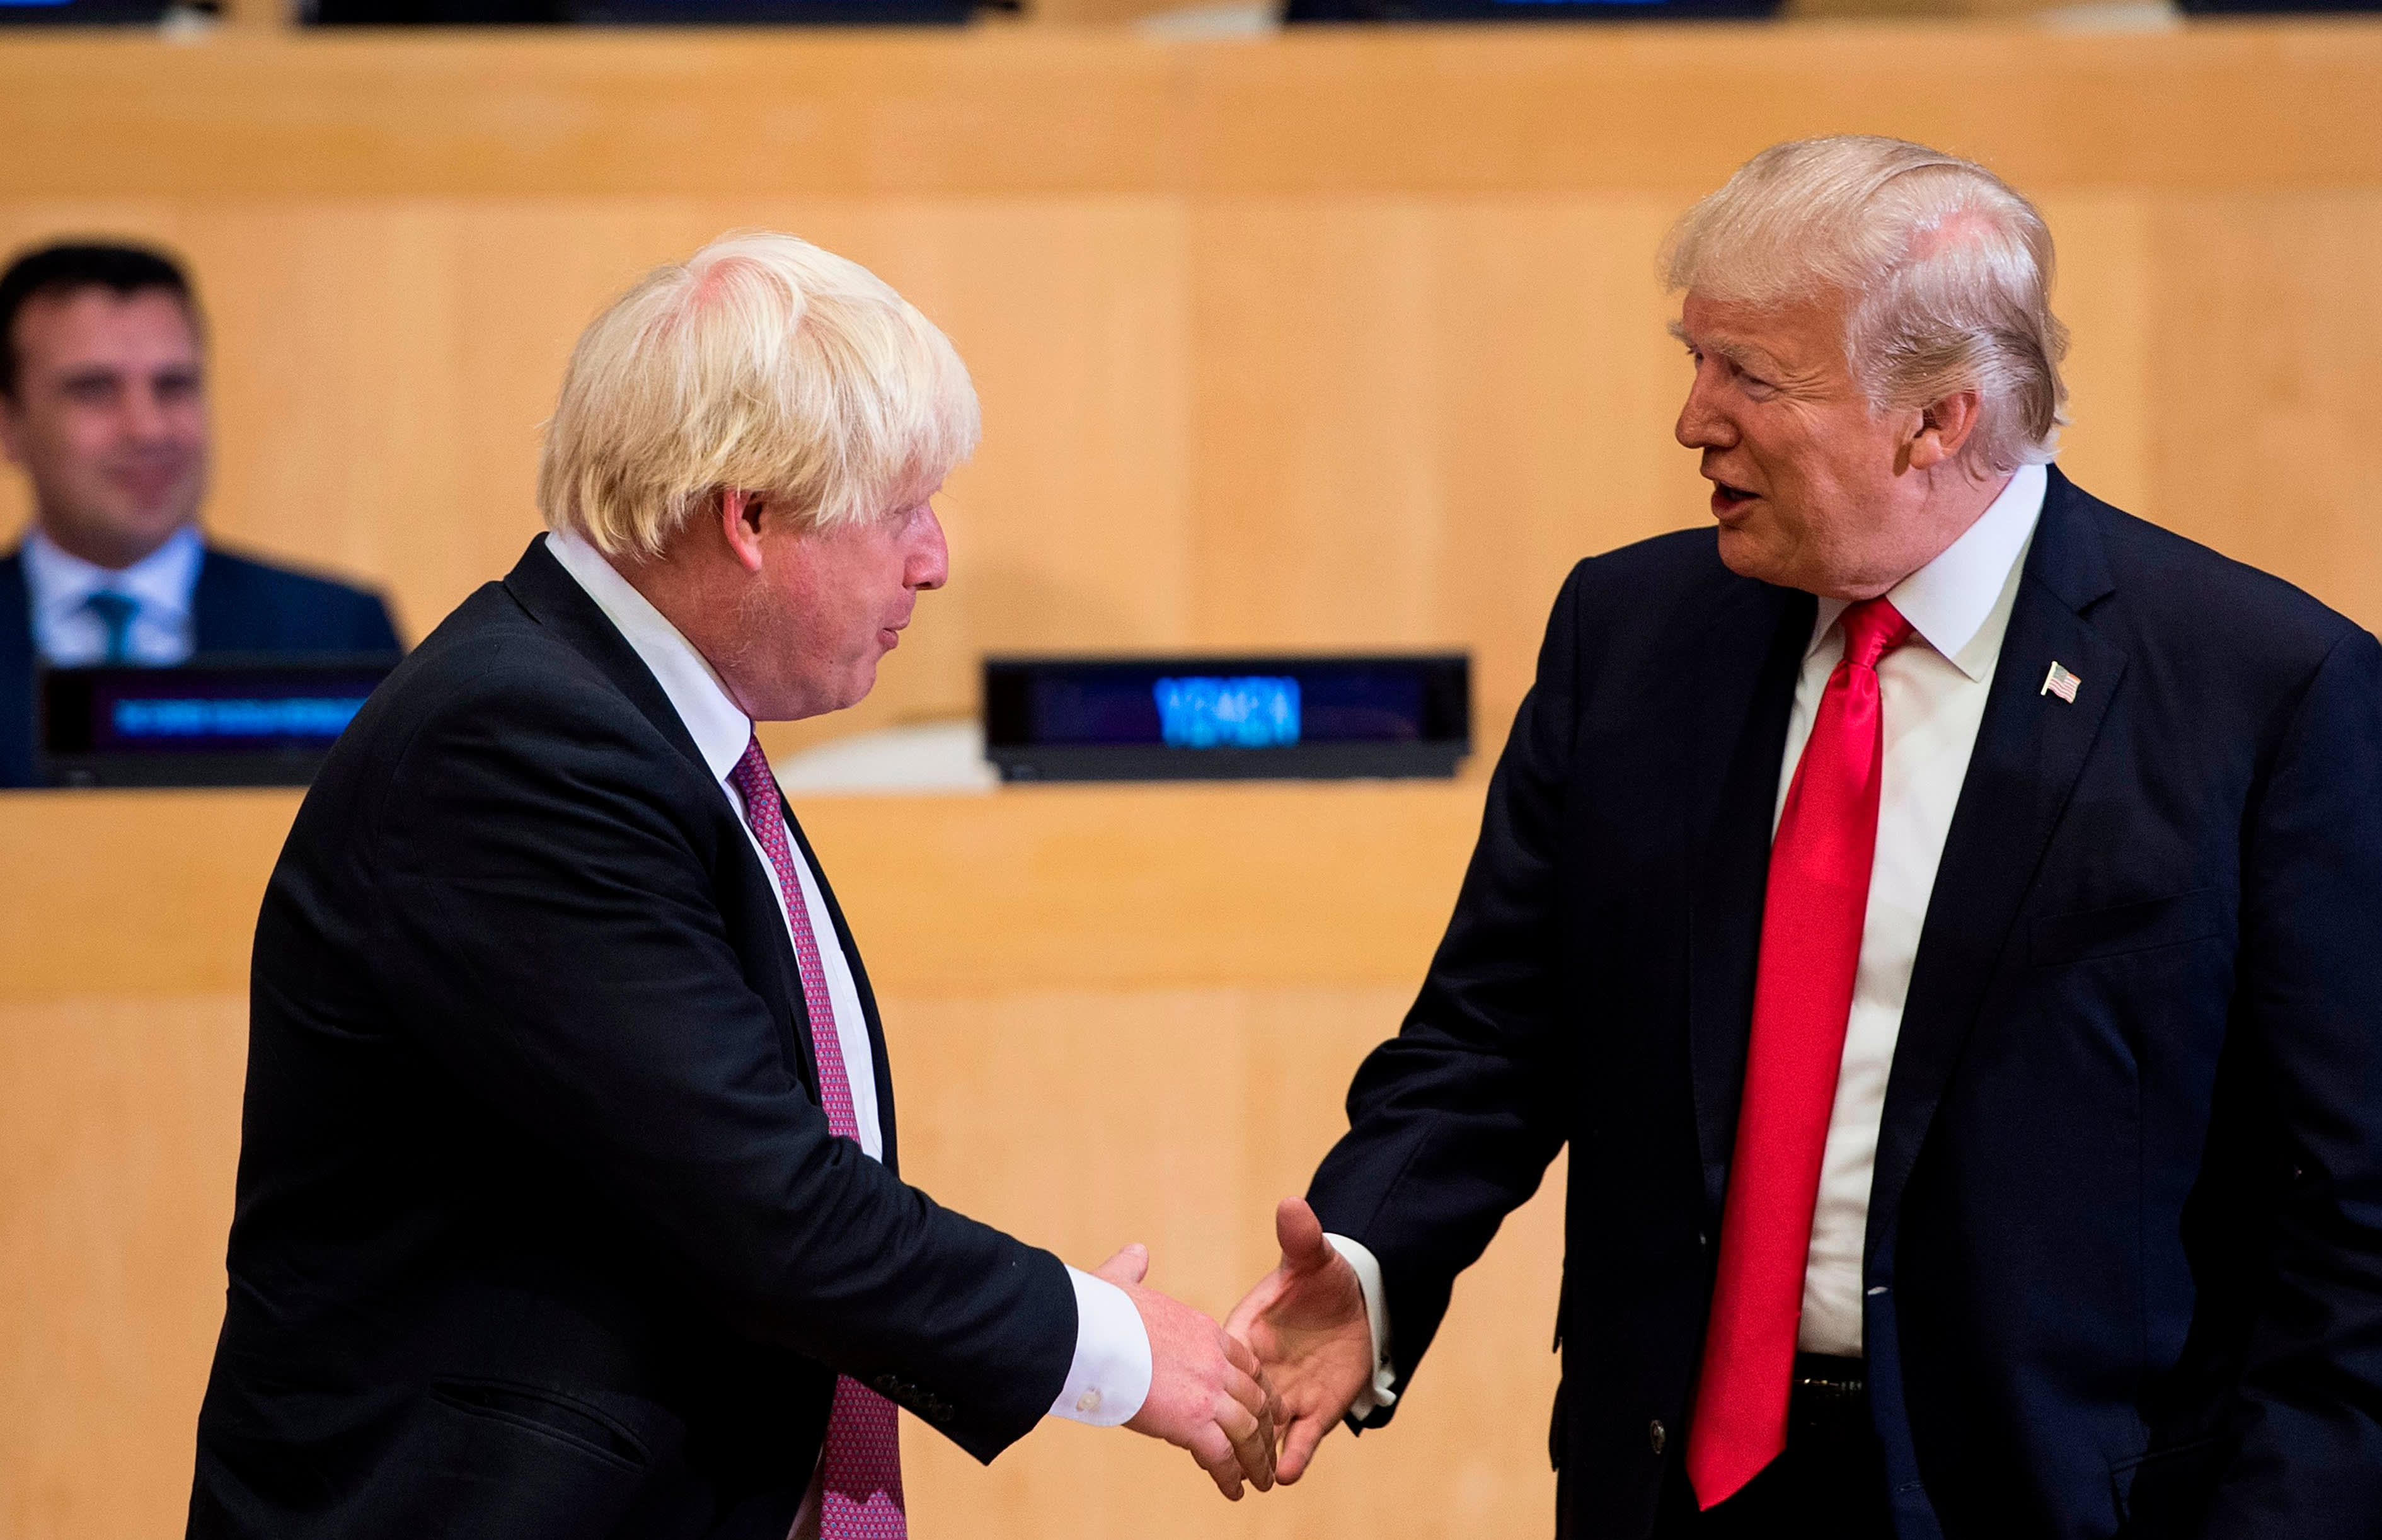 Stuck between EU leaders and Trump, Boris Johnson could have a very awkward G-7 summit